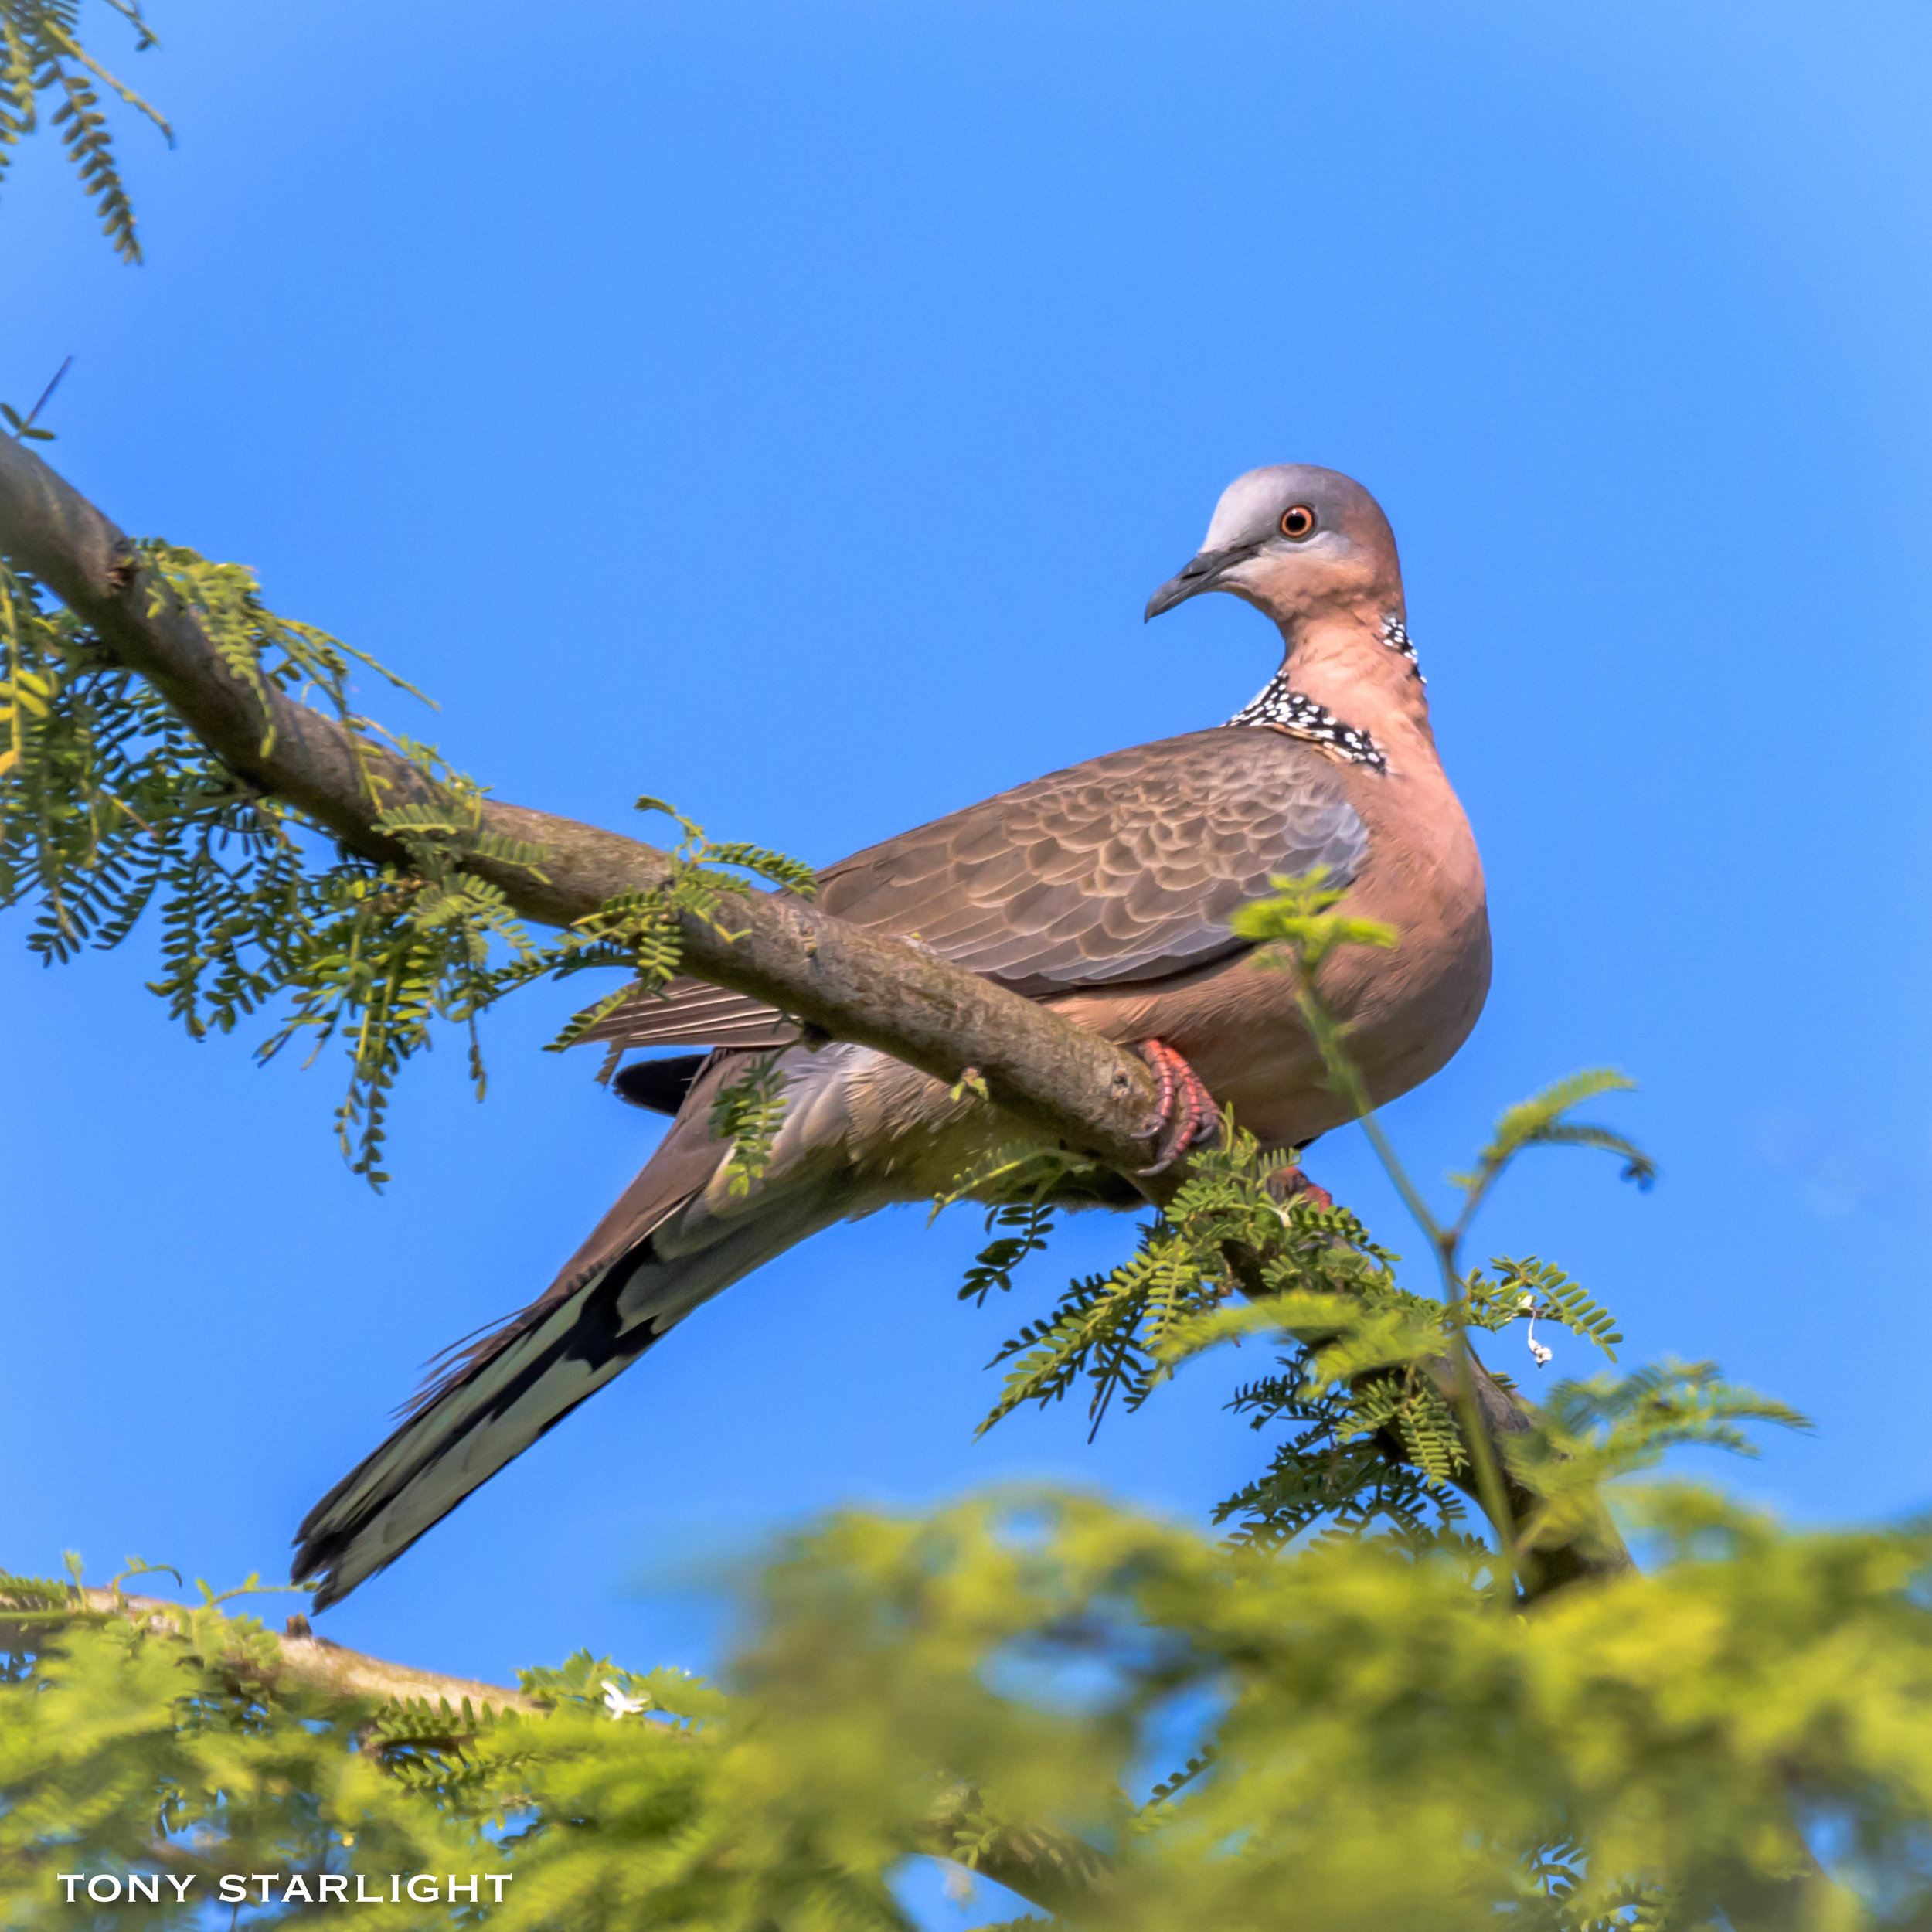 Spotted Dove - Twice the size of the more common Zebra Dove. Very reminiscent of the Eurasian Collared-dove from home. Can be heard cooing in the morning hours.